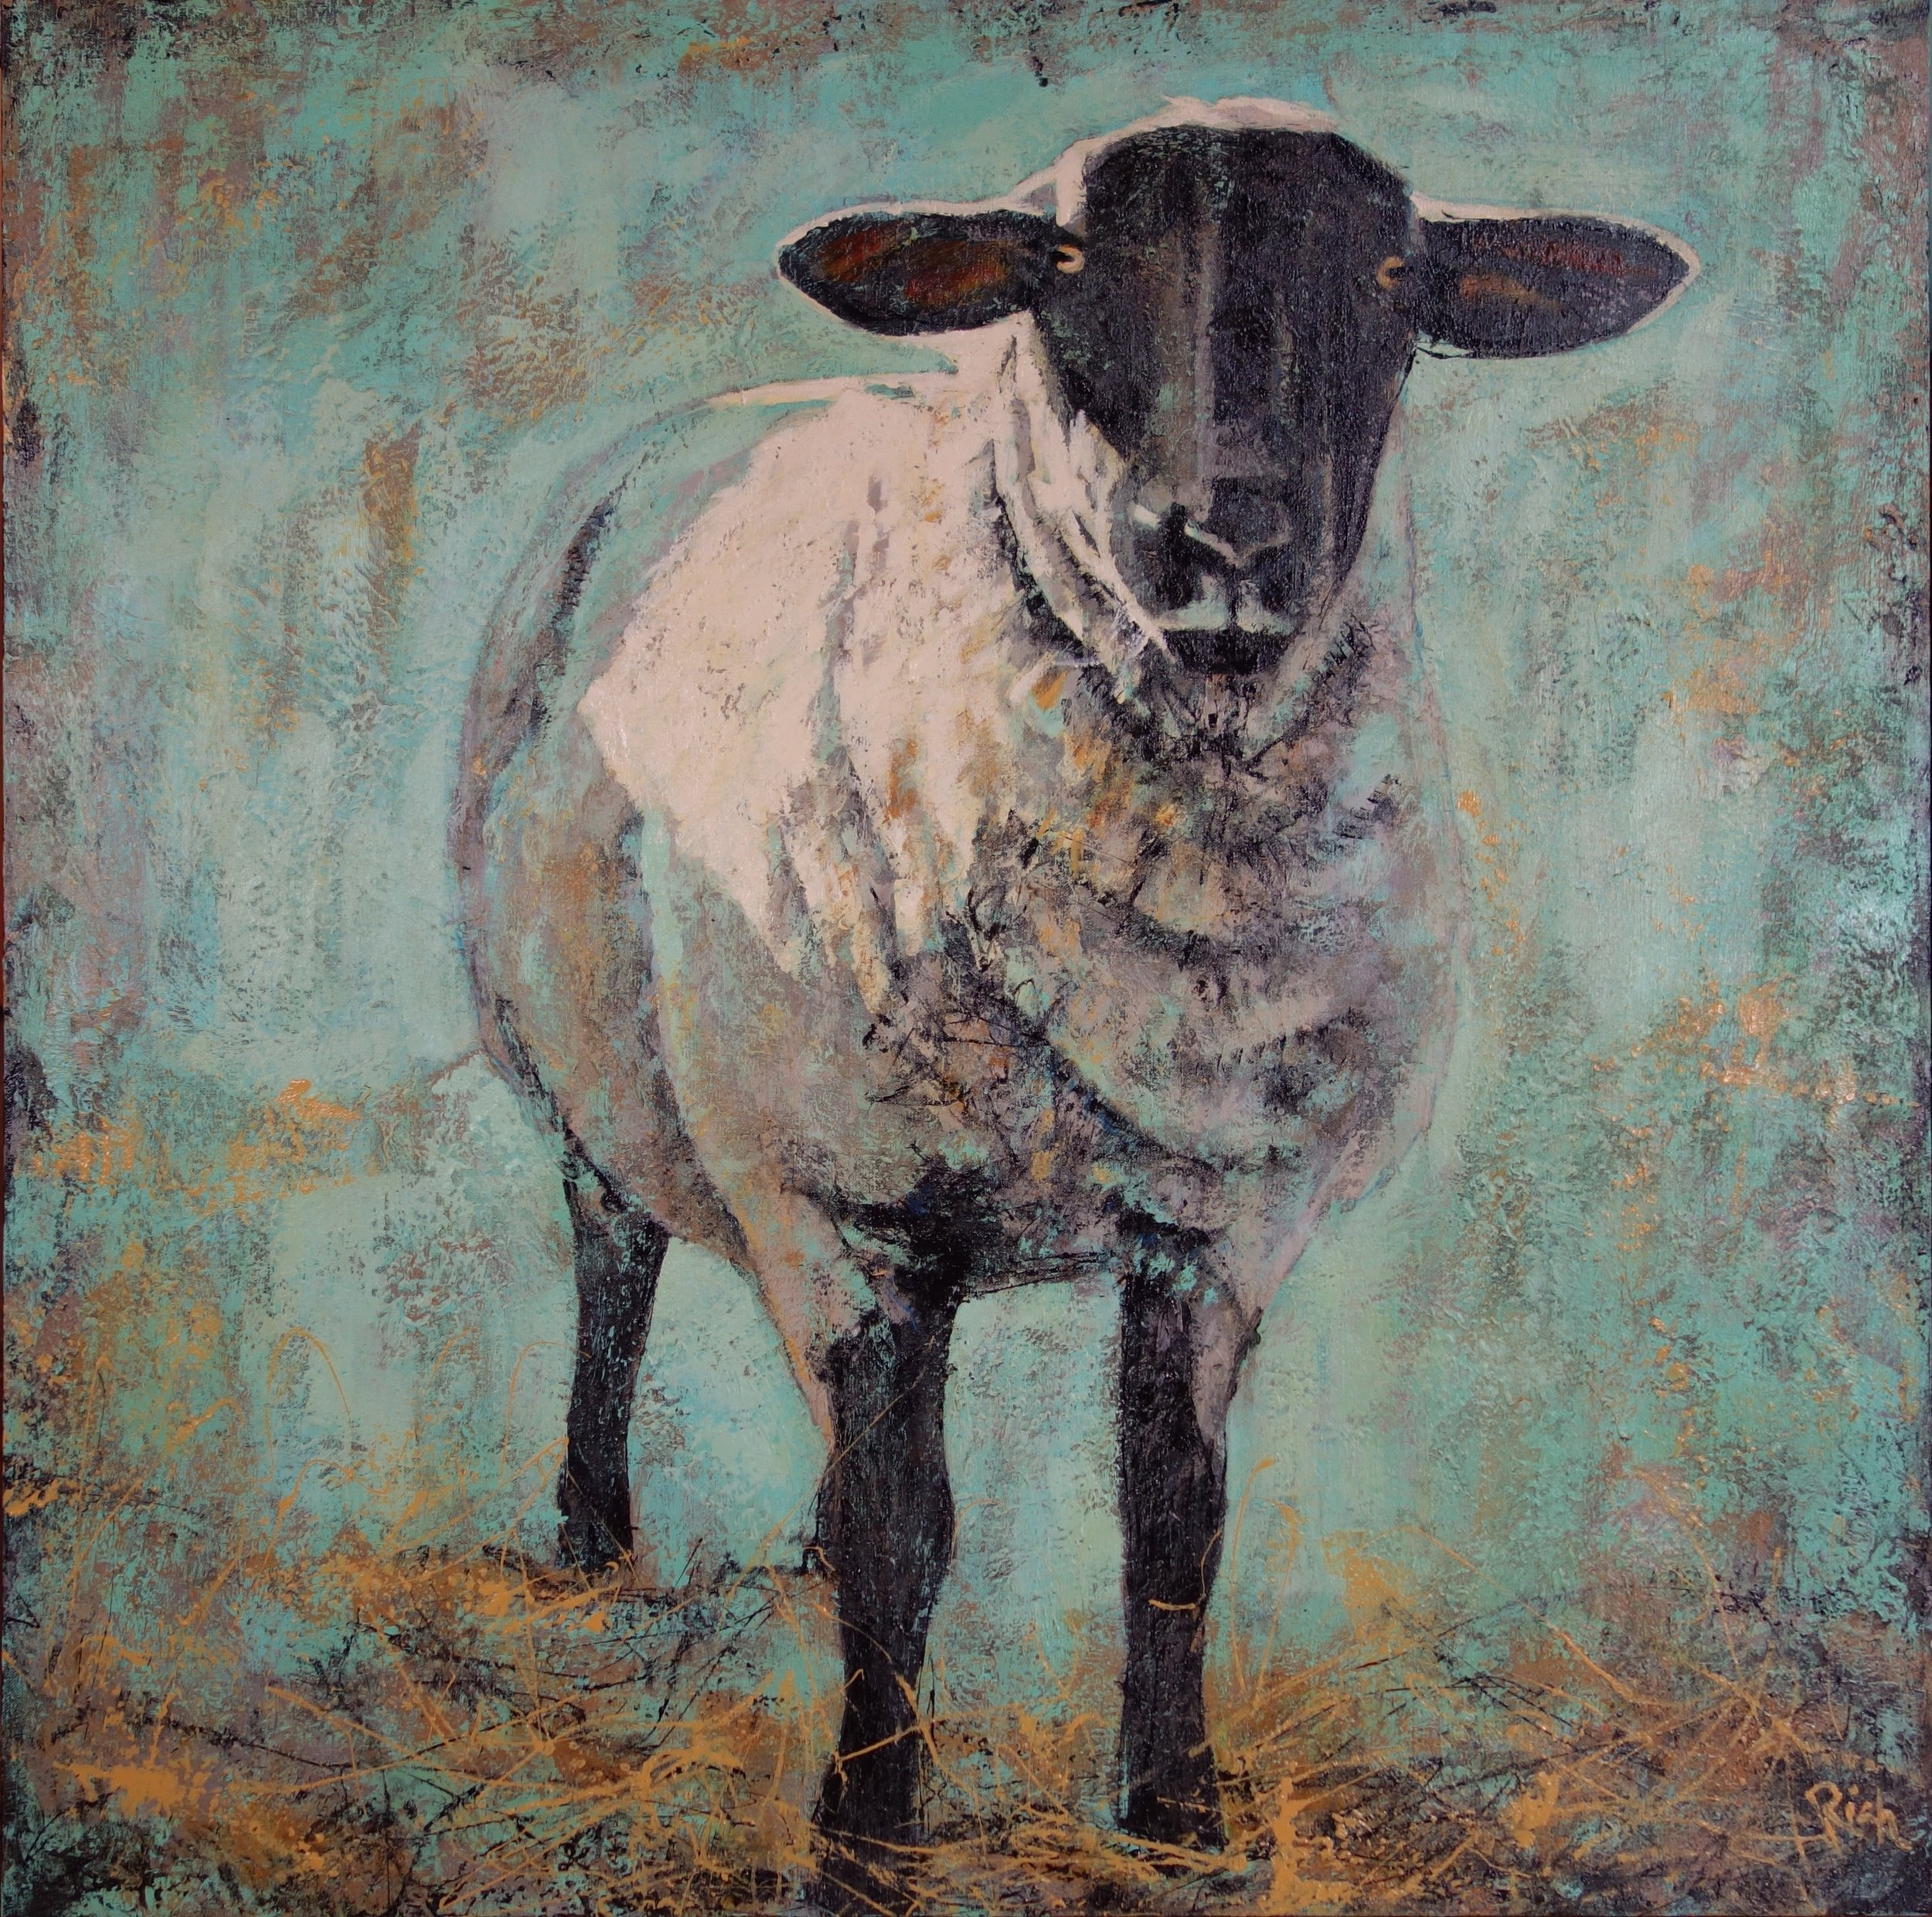 White Sheep on Turquiose  Acrylic on canvas 36x36